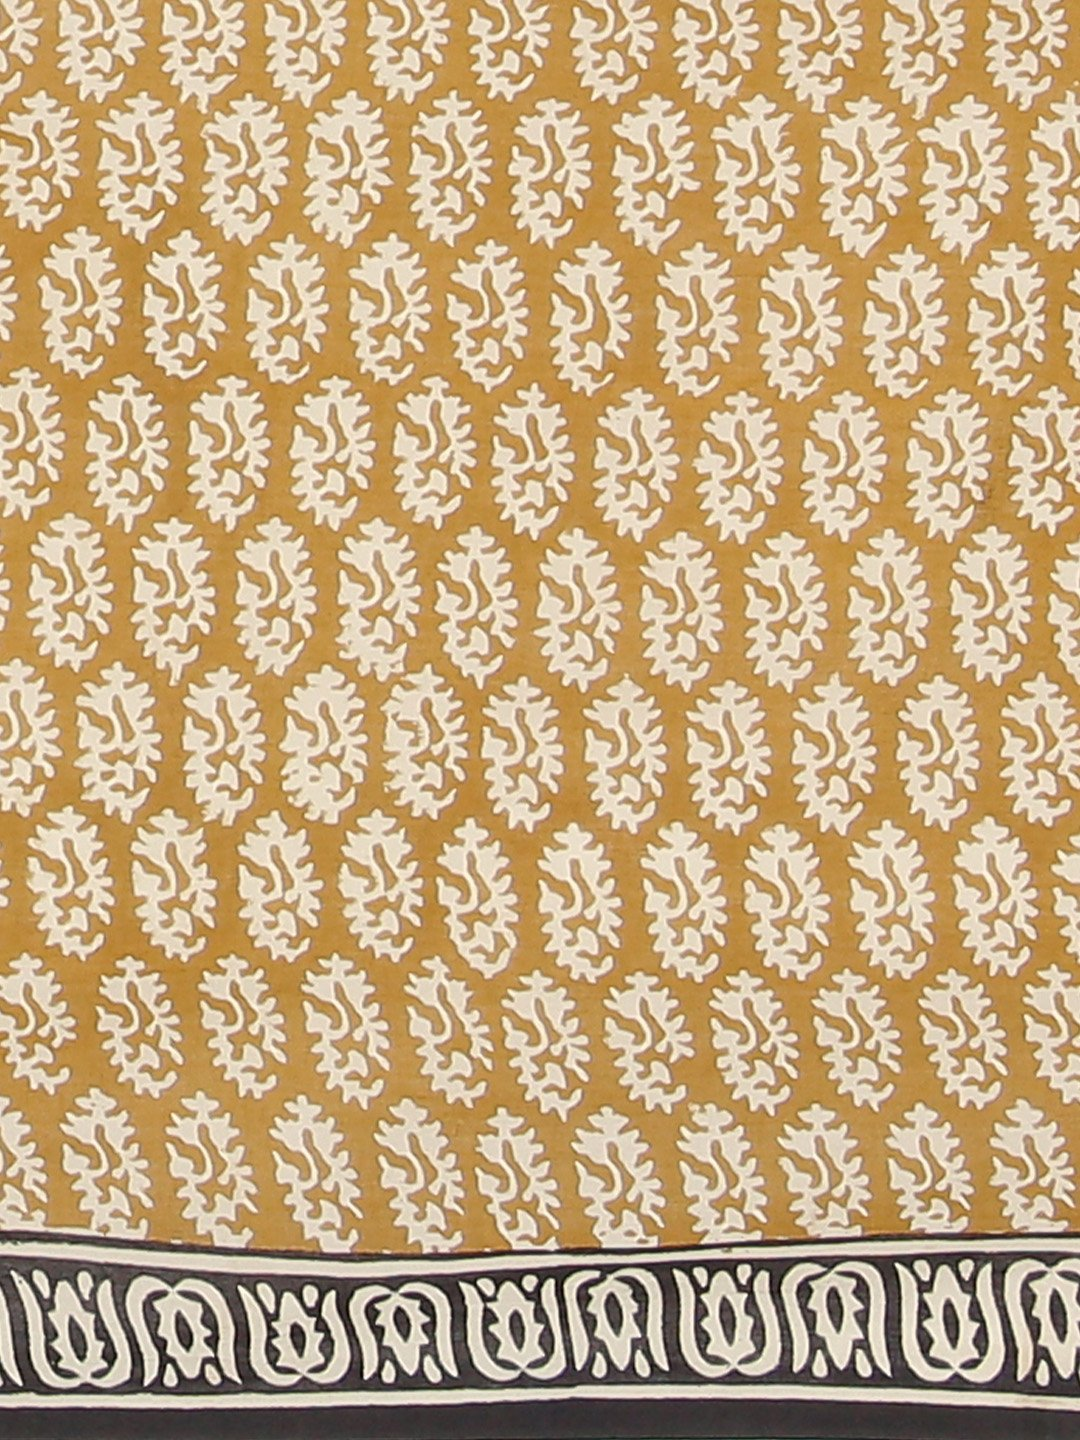 Brown Beige Dabu Handblock Print Bagru Saree-Saree-Kalakari India-BHKPSA0092-Cotton, Dabu, Geographical Indication, Hand Blocks, Hand Crafted, Heritage Prints, Indigo, Natural Dyes, Sarees, Sustainable Fabrics-[Linen,Ethnic,wear,Fashionista,Handloom,Handicraft,Indigo,blockprint,block,print,Cotton,Chanderi,Blue, latest,classy,party,bollywood,trendy,summer,style,traditional,formal,elegant,unique,style,hand,block,print, dabu,booti,gift,present,glamorous,affordable,collectible,Sari,Saree,printed, ho